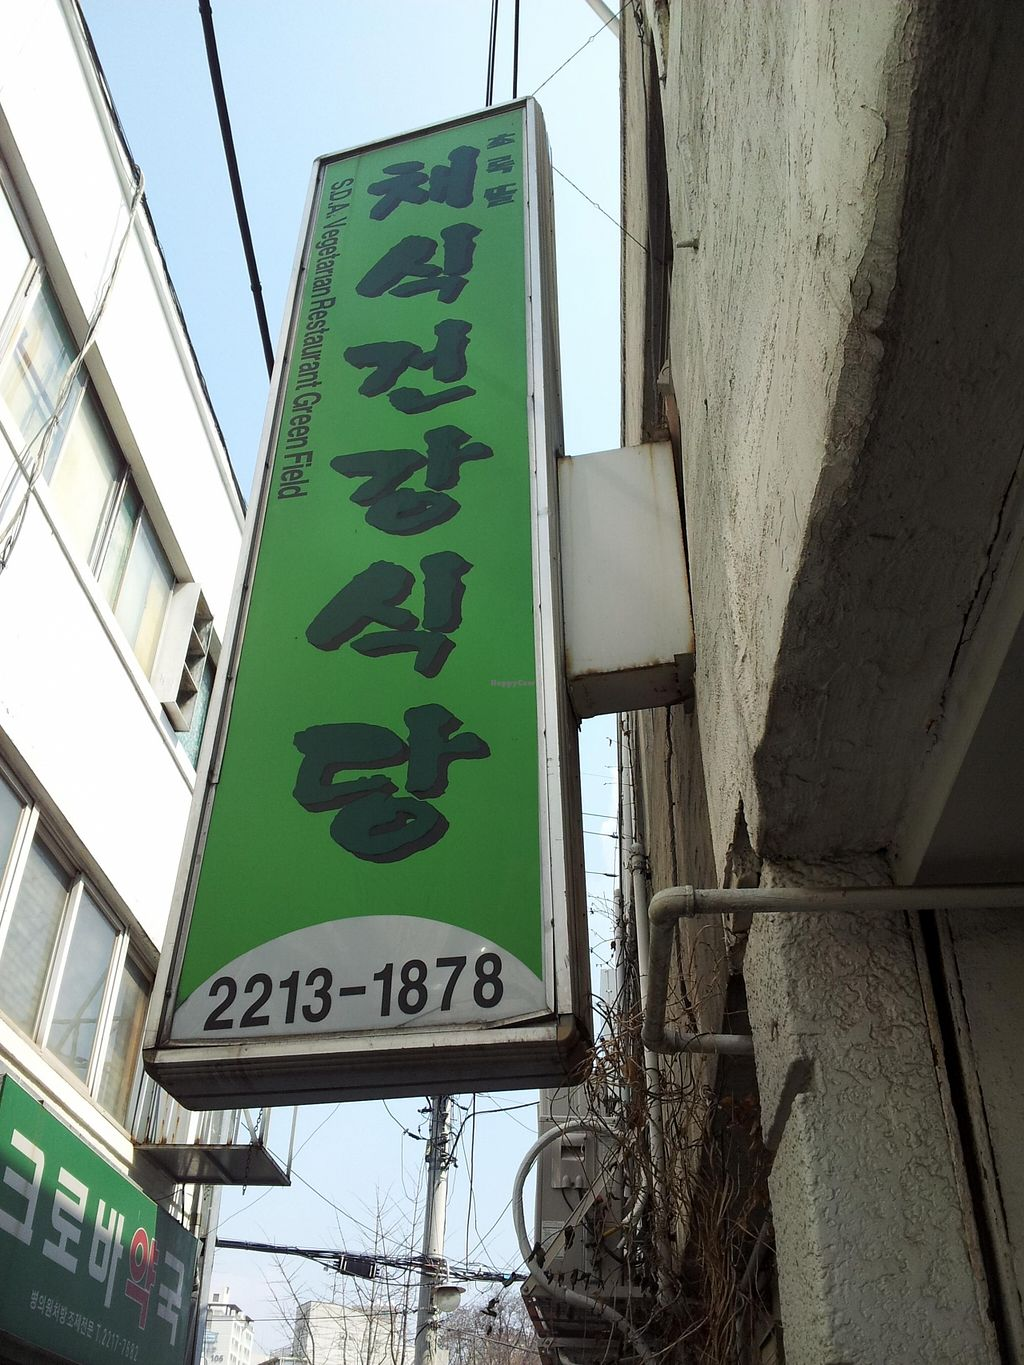 """Photo of Chorokddeul - Green Field - 초록뜰식당  by <a href=""""/members/profile/MarmiteHappy"""">MarmiteHappy</a> <br/>External sign <br/> April 8, 2016  - <a href='/contact/abuse/image/64286/143516'>Report</a>"""